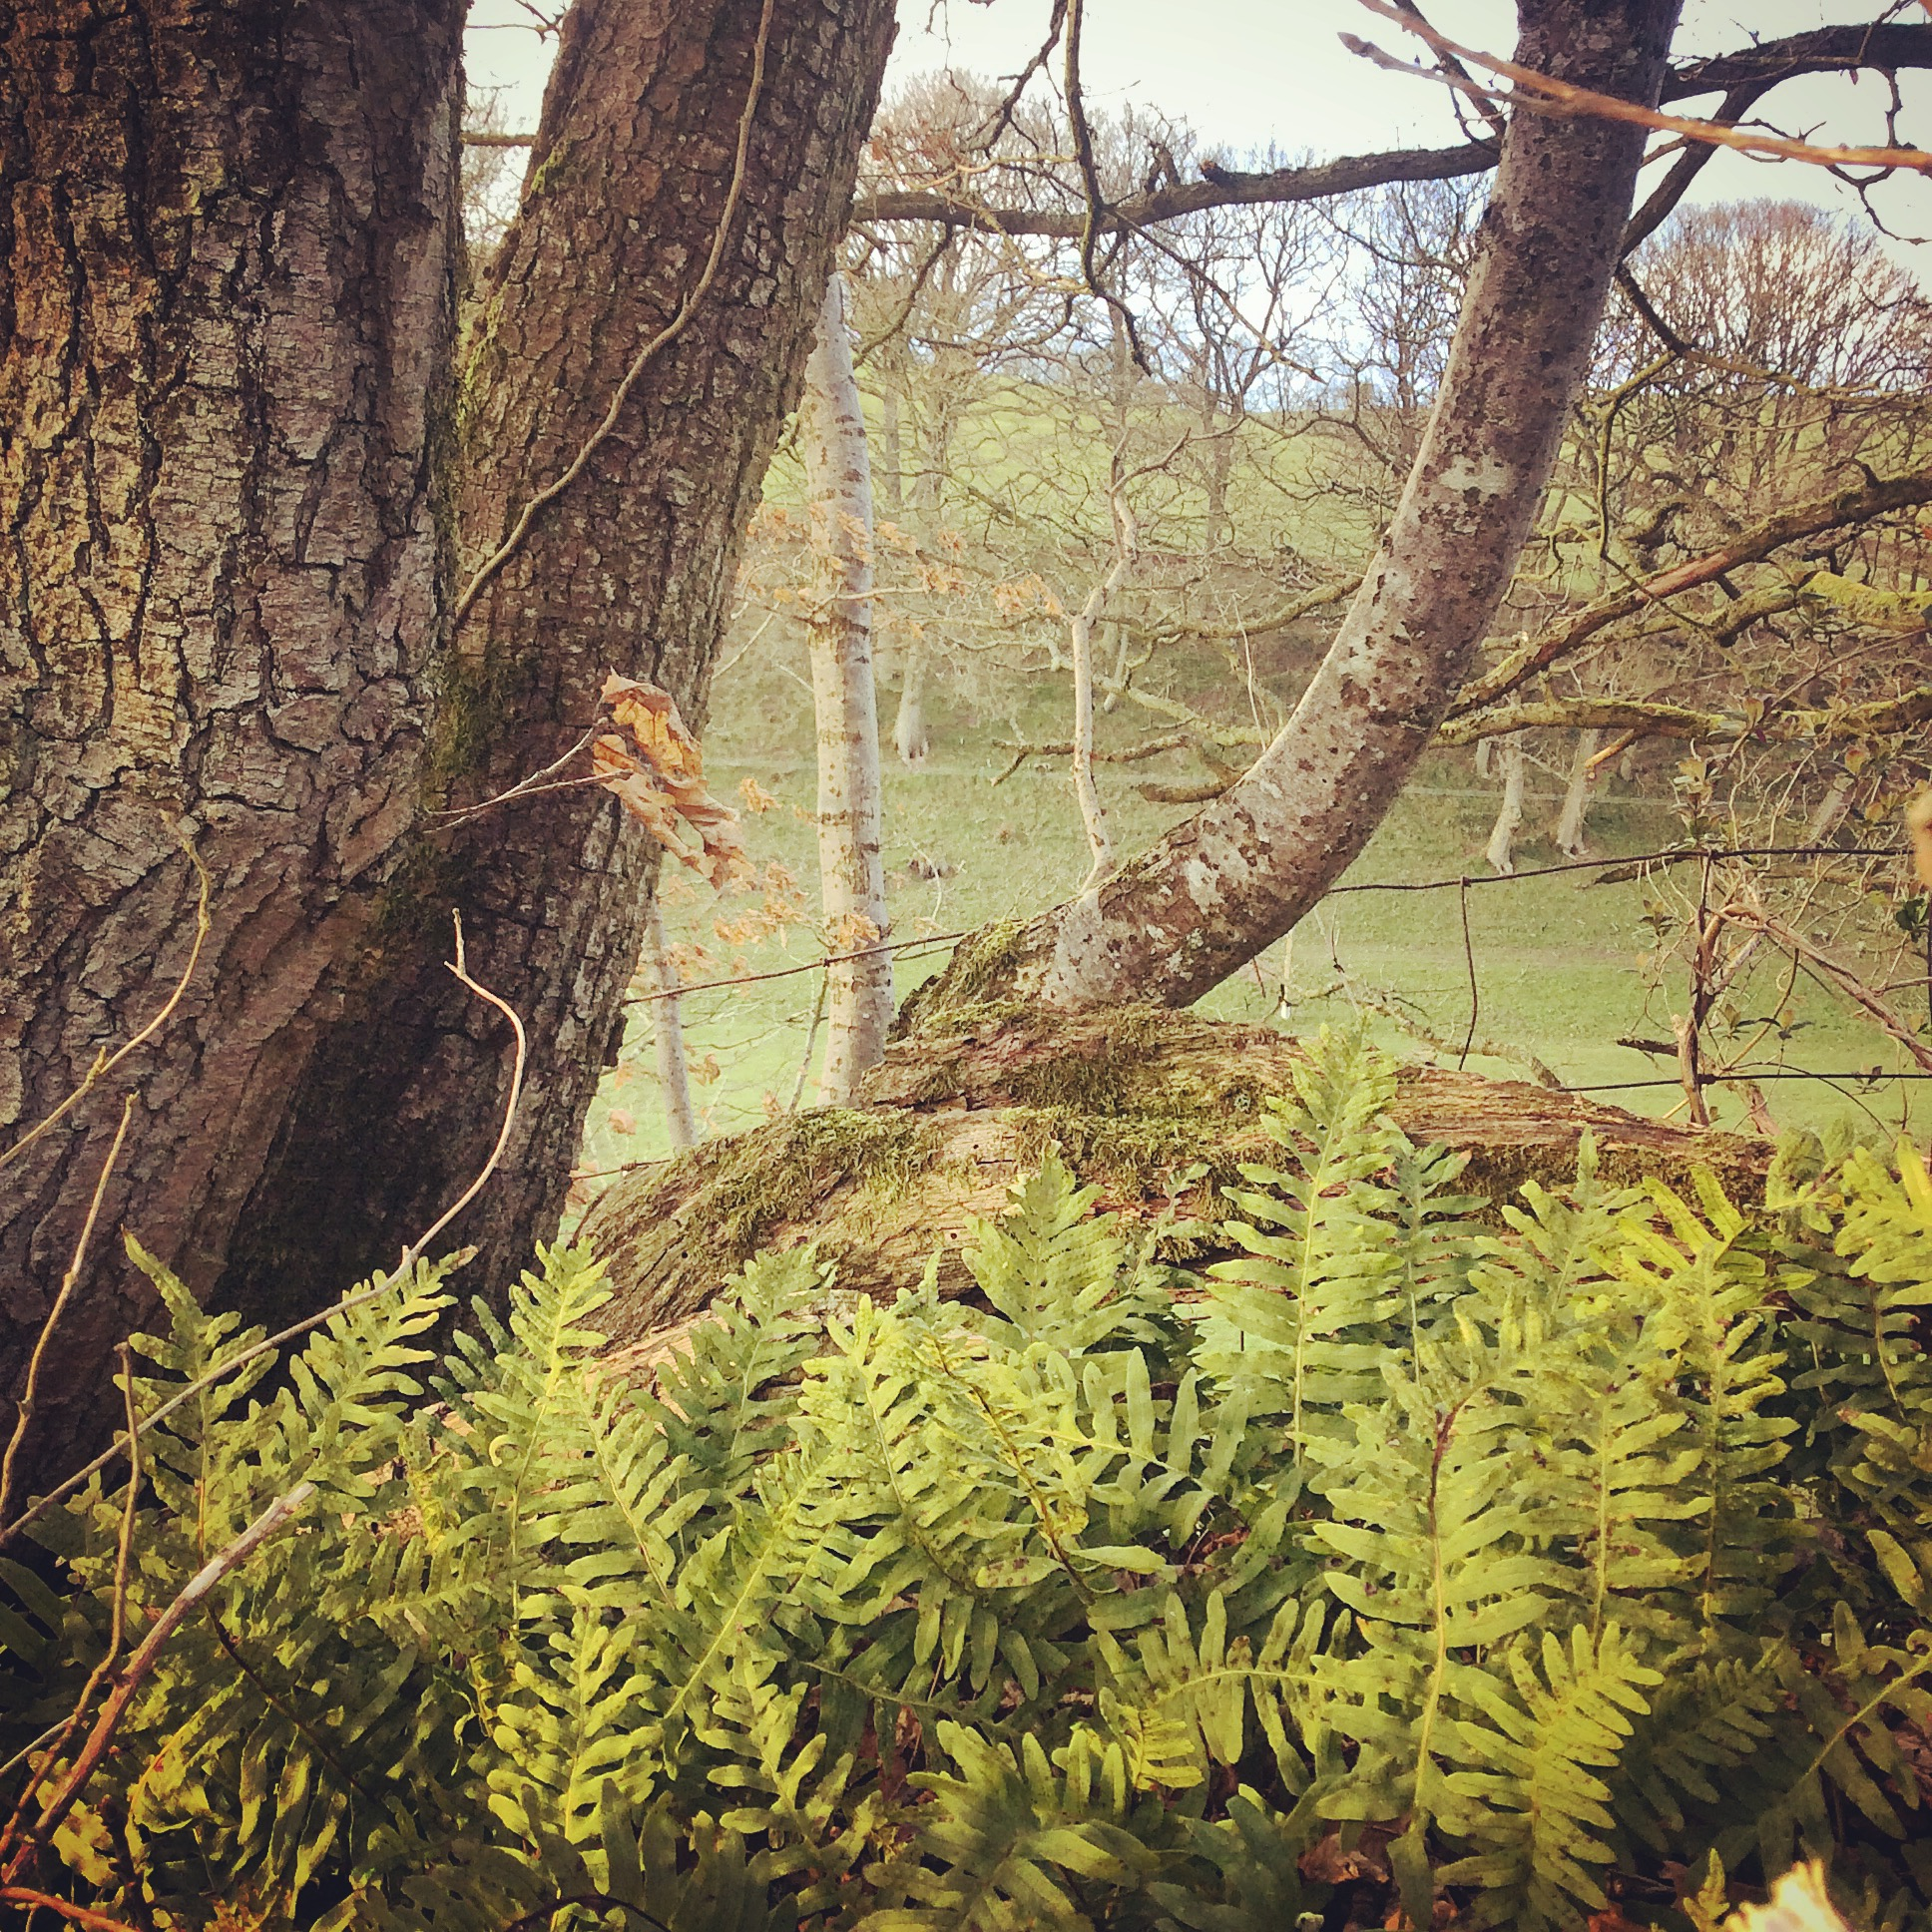 Oak and Ferns in Spring